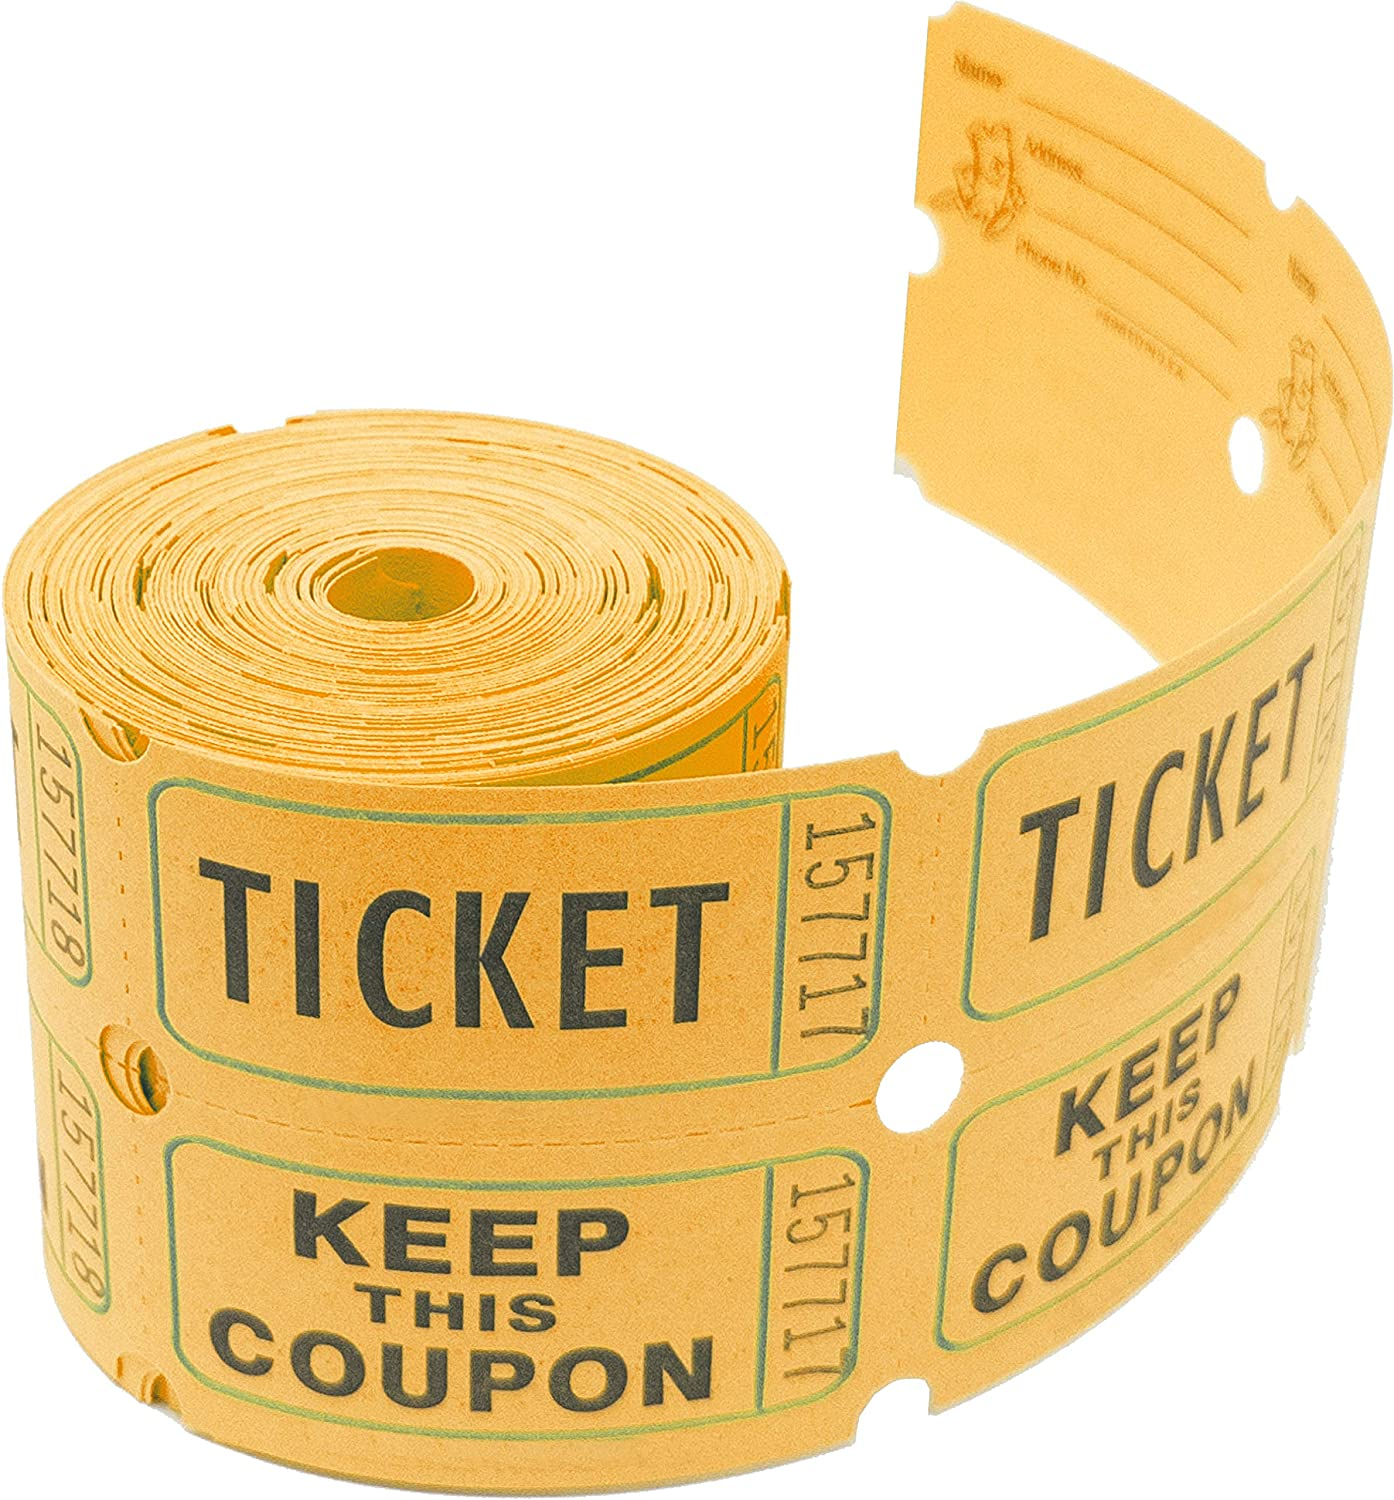 Tacticai 200 Orange Raffle Tickets (8 Colors Available) for Events, Entry, Class Reward, Admittance, or Fundraising, Tear Away Tickets, Brightly Colored Paper (Double Roll - Keep) - Made in USA